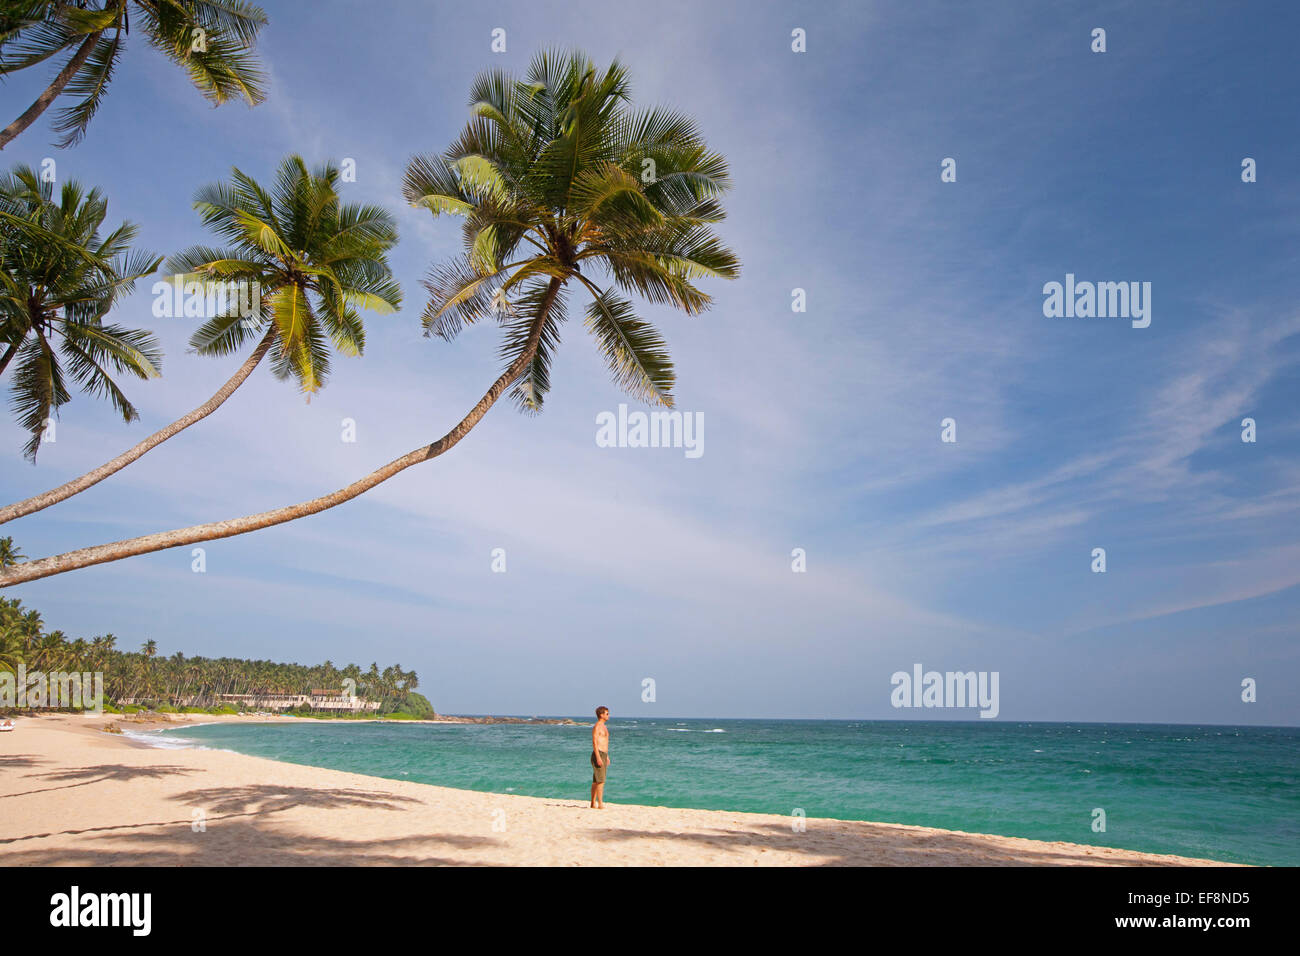 MAN ON DESERTED BEACH IN TANGALLA - Stock Image